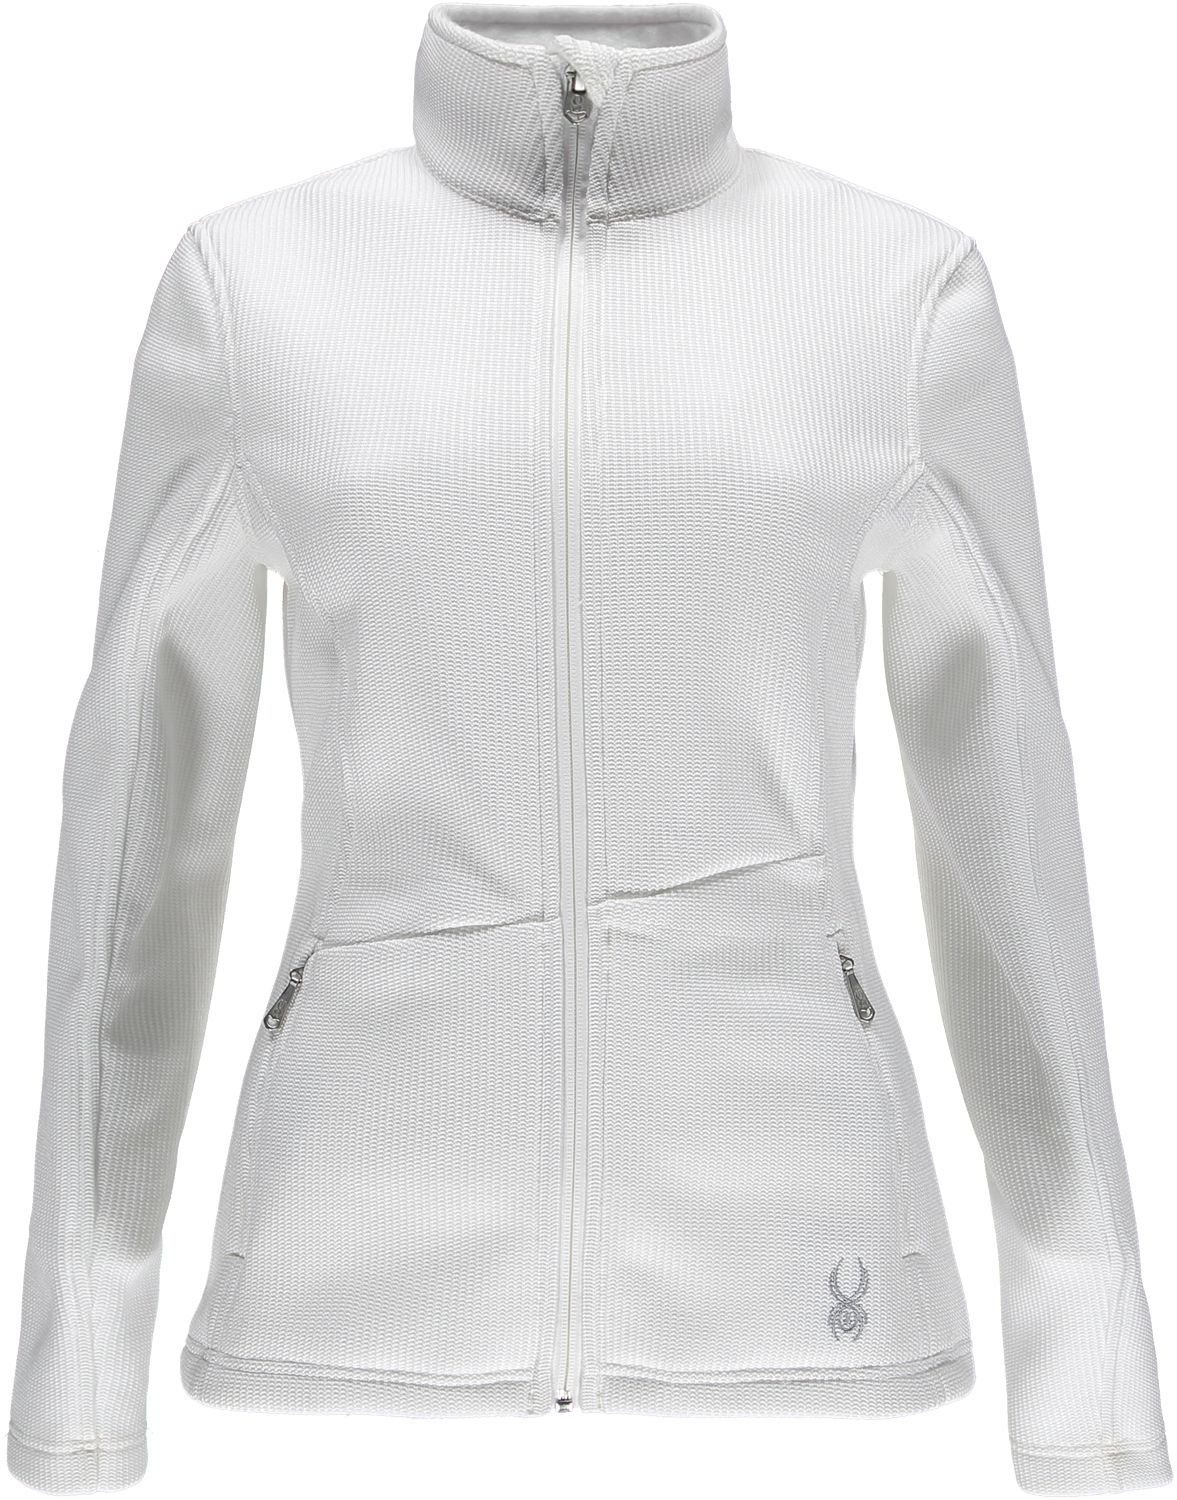 Women's White Sweaters & Fleece Jackets | DICK'S Sporting Goods